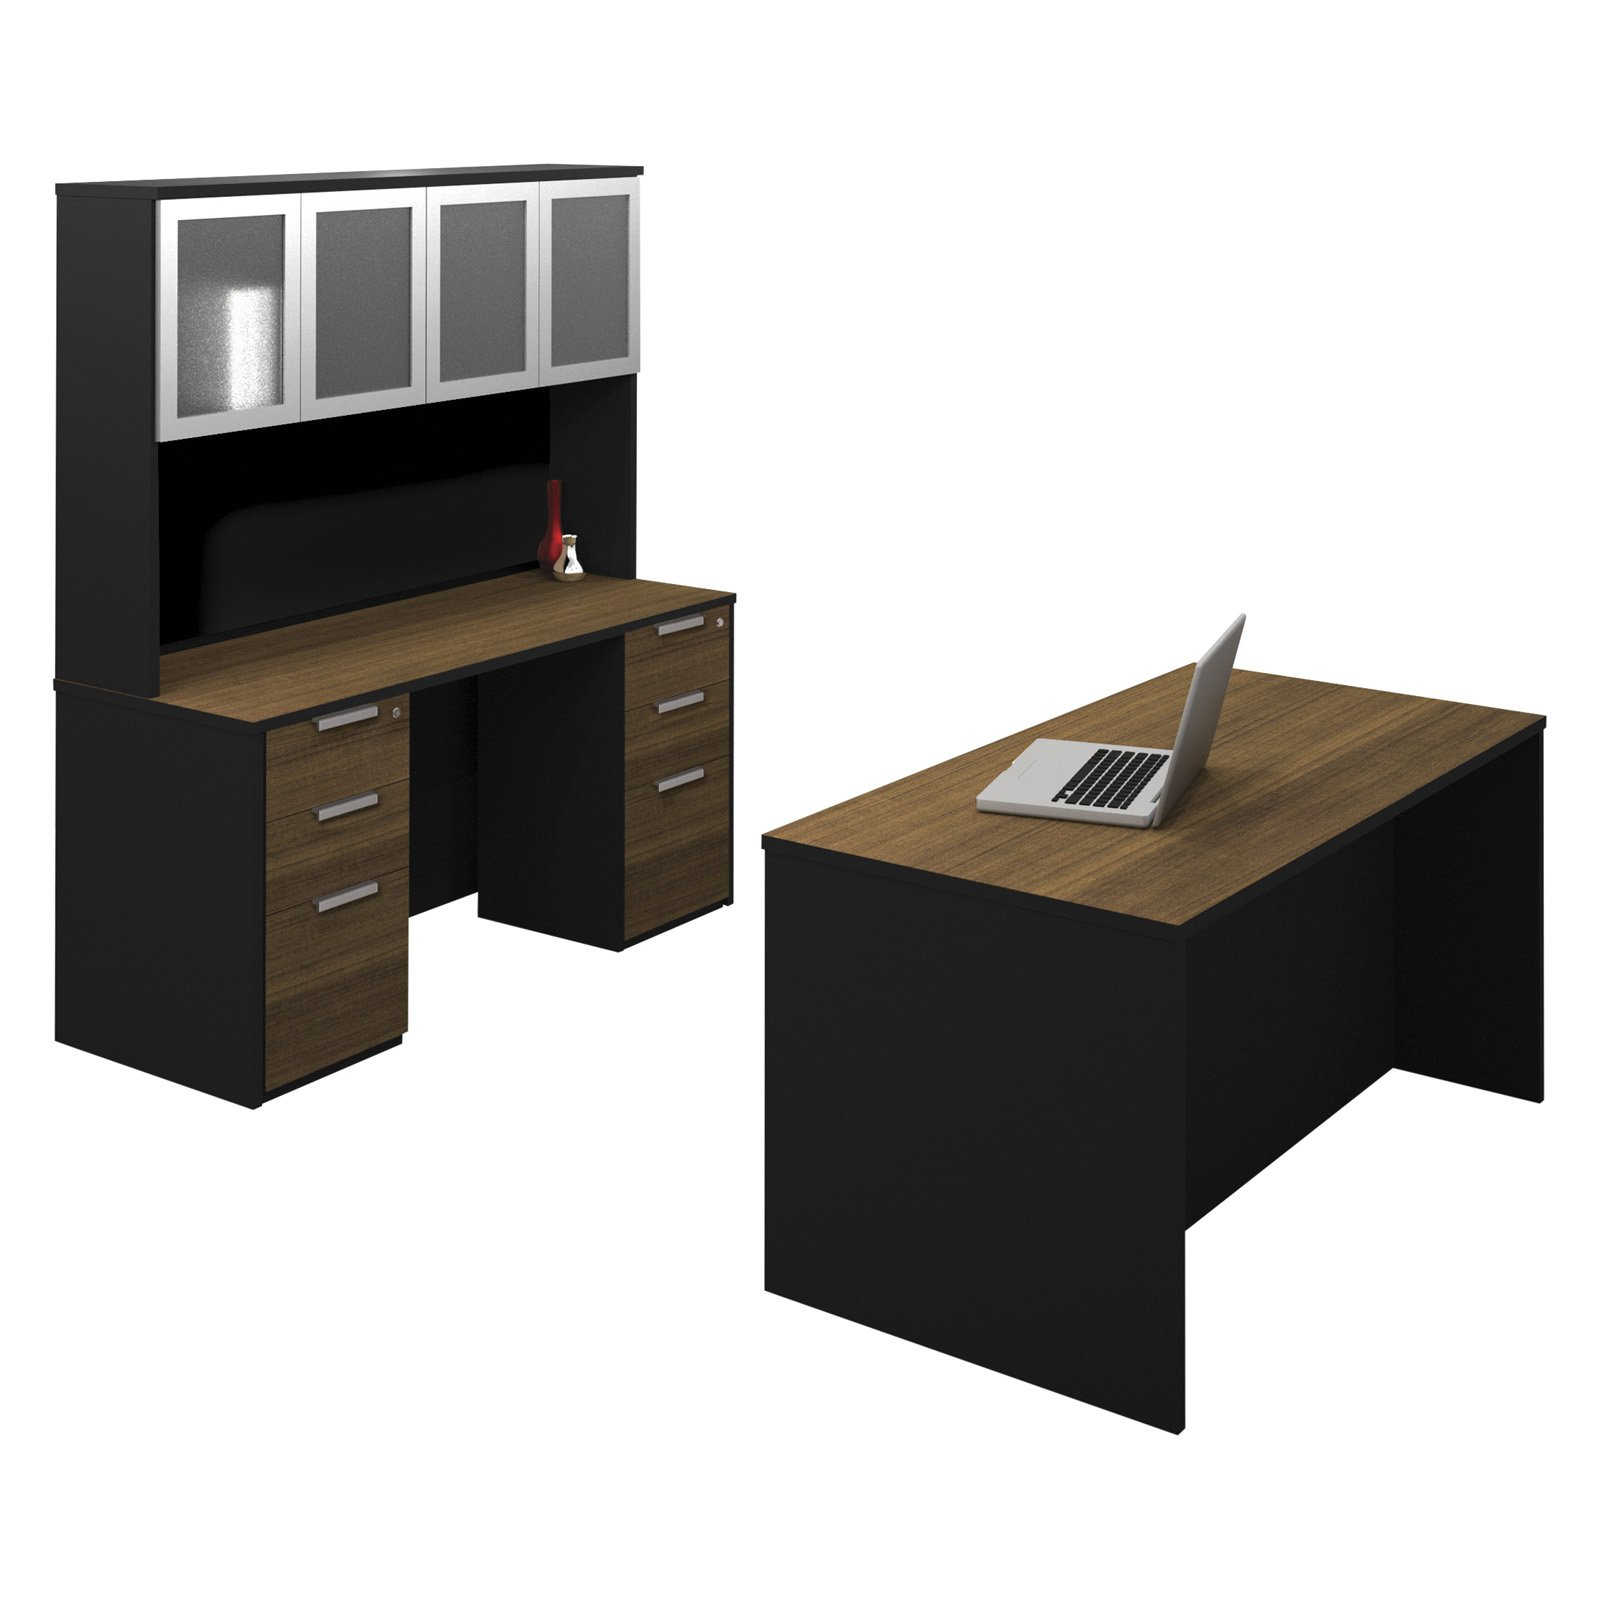 Bestar Pro-Concept Executive Kit with Dual Assembled Pedestals - Milk Chocolate Bamboo and Black